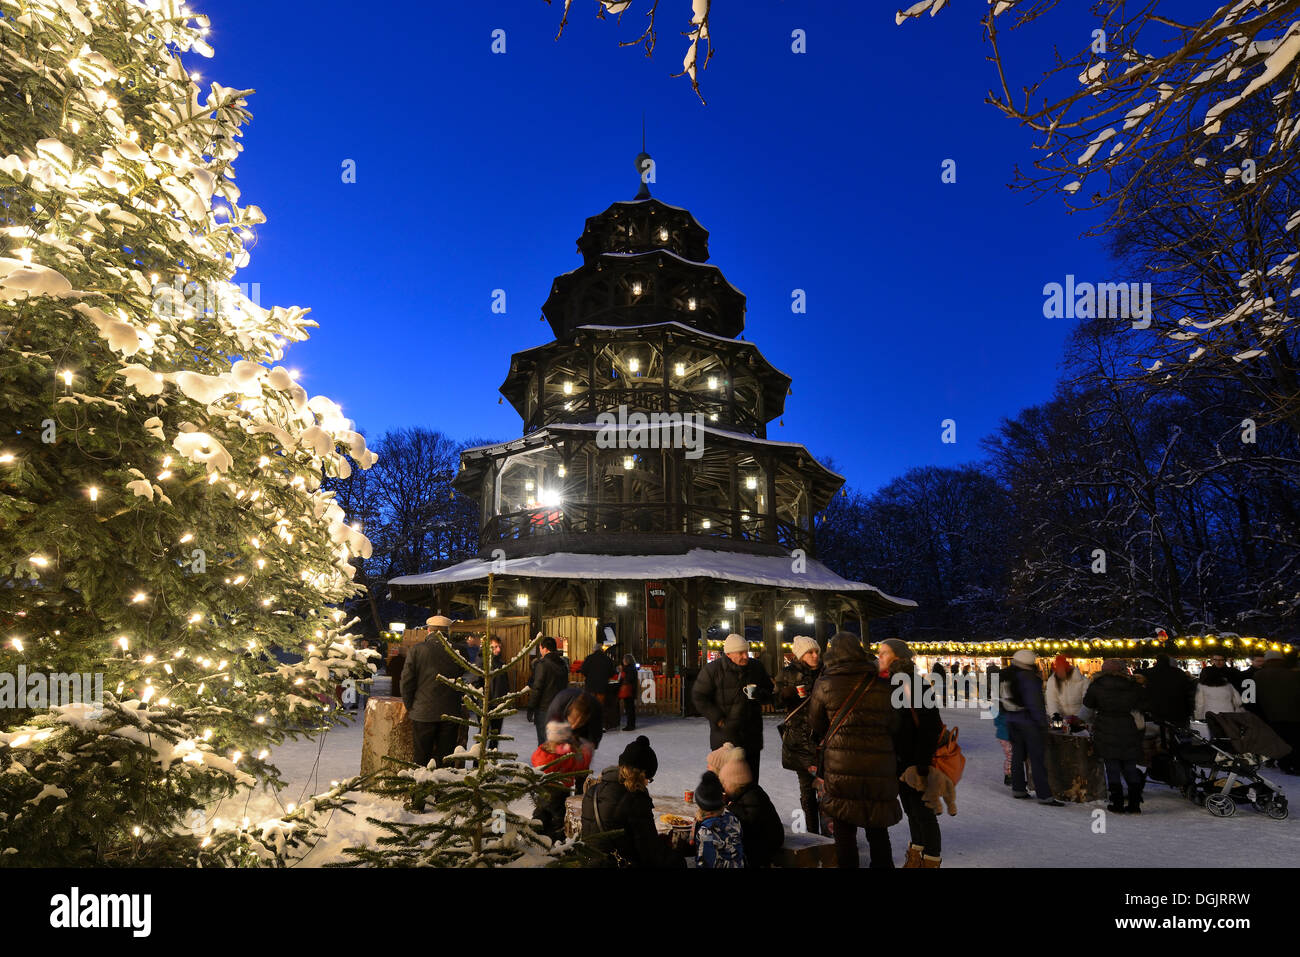 Christmas market at the Chinese Tower, English Gardens, München, Munich, Upper Bavaria, Bavaria, Germany - Stock Image